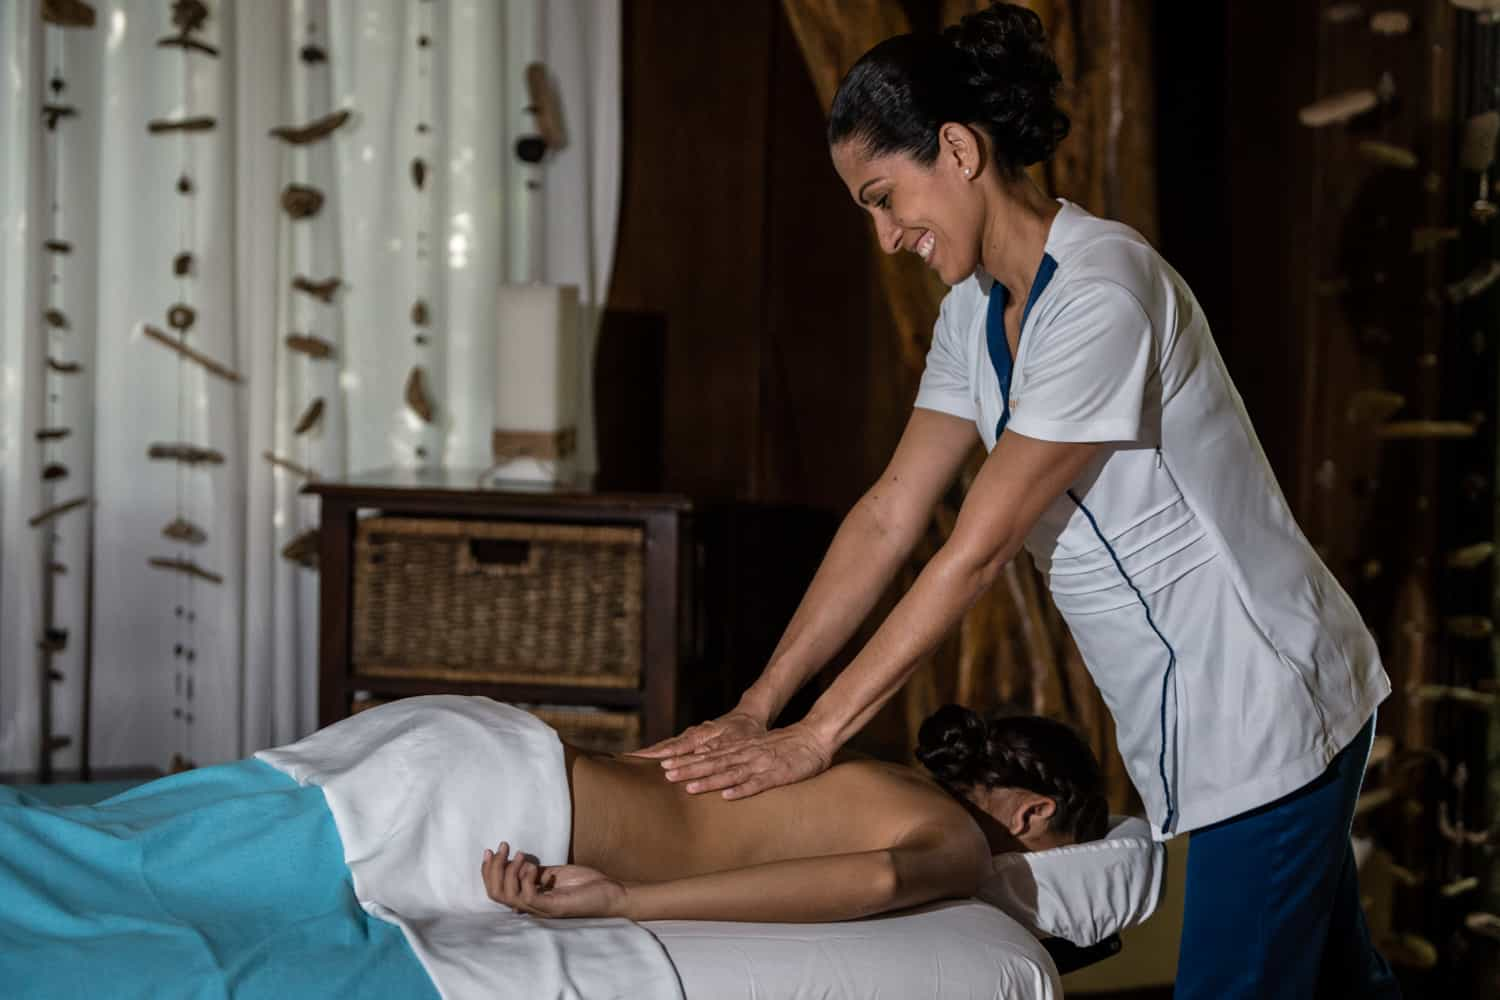 Massage therapist massing bride to be before wedding ceremony.